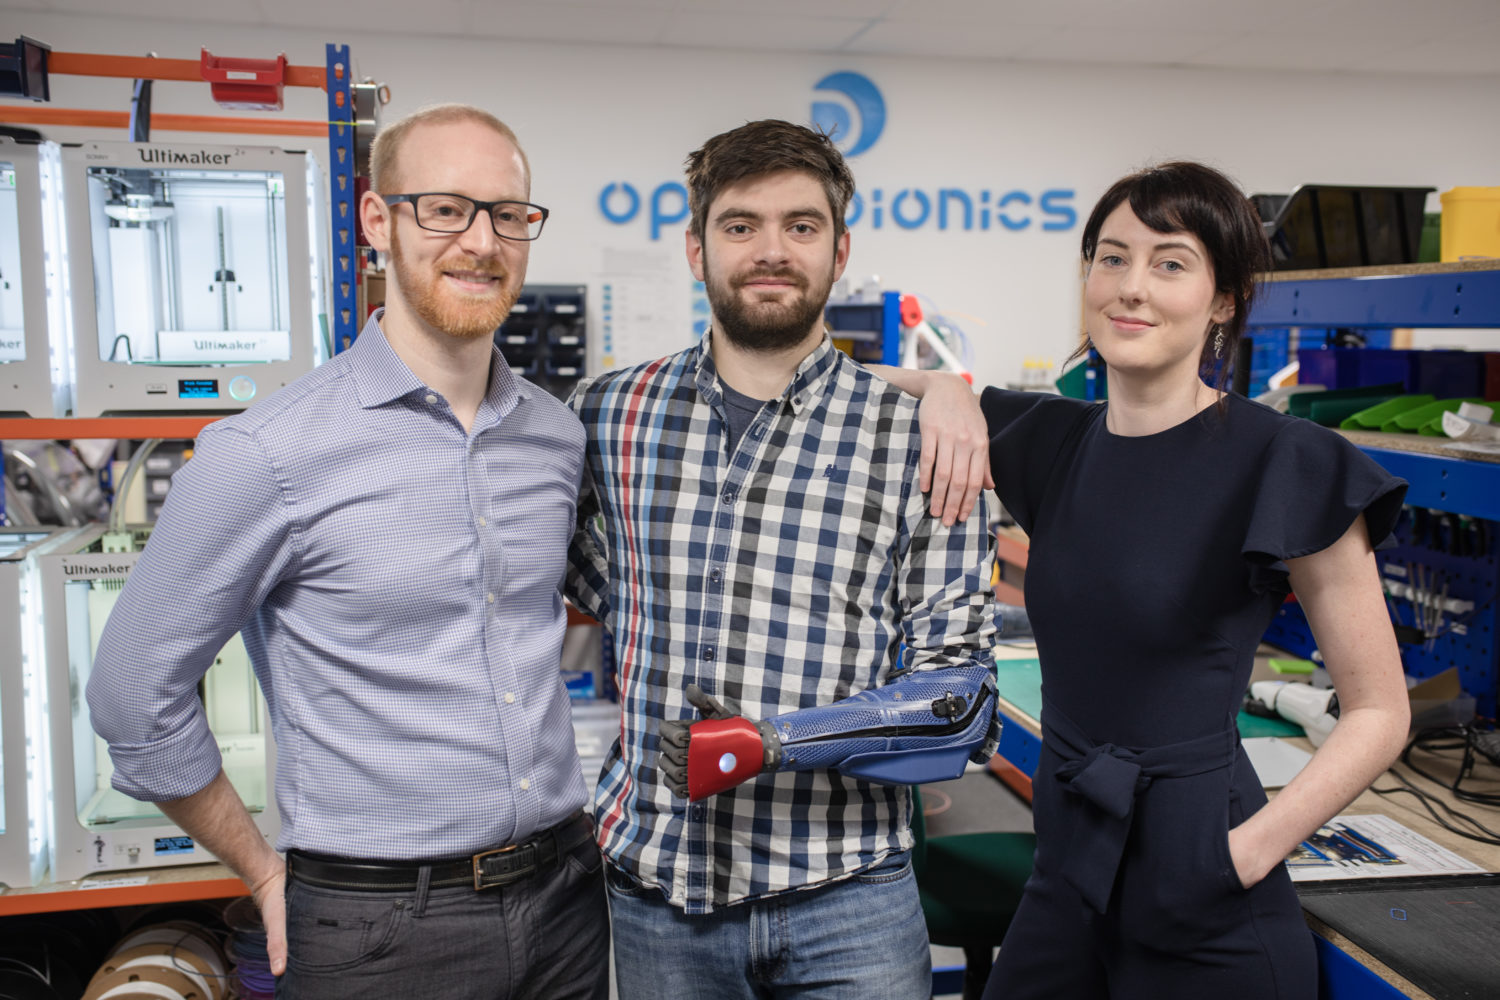 Joel Gibbard, Samantha Payne & Luke Manson at Open Bionics office